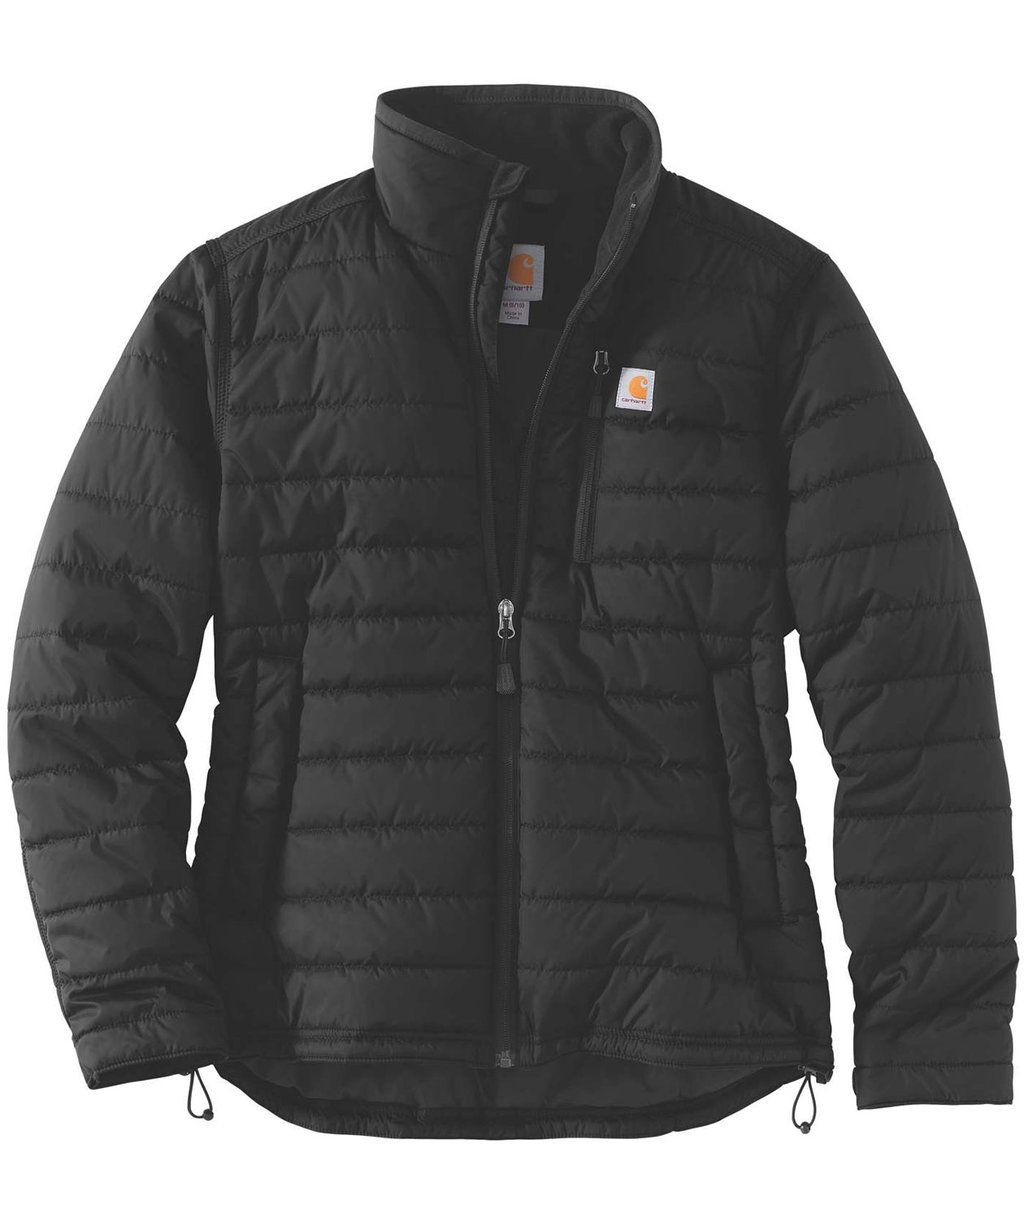 Carhartt Gilliam jacka, Svart